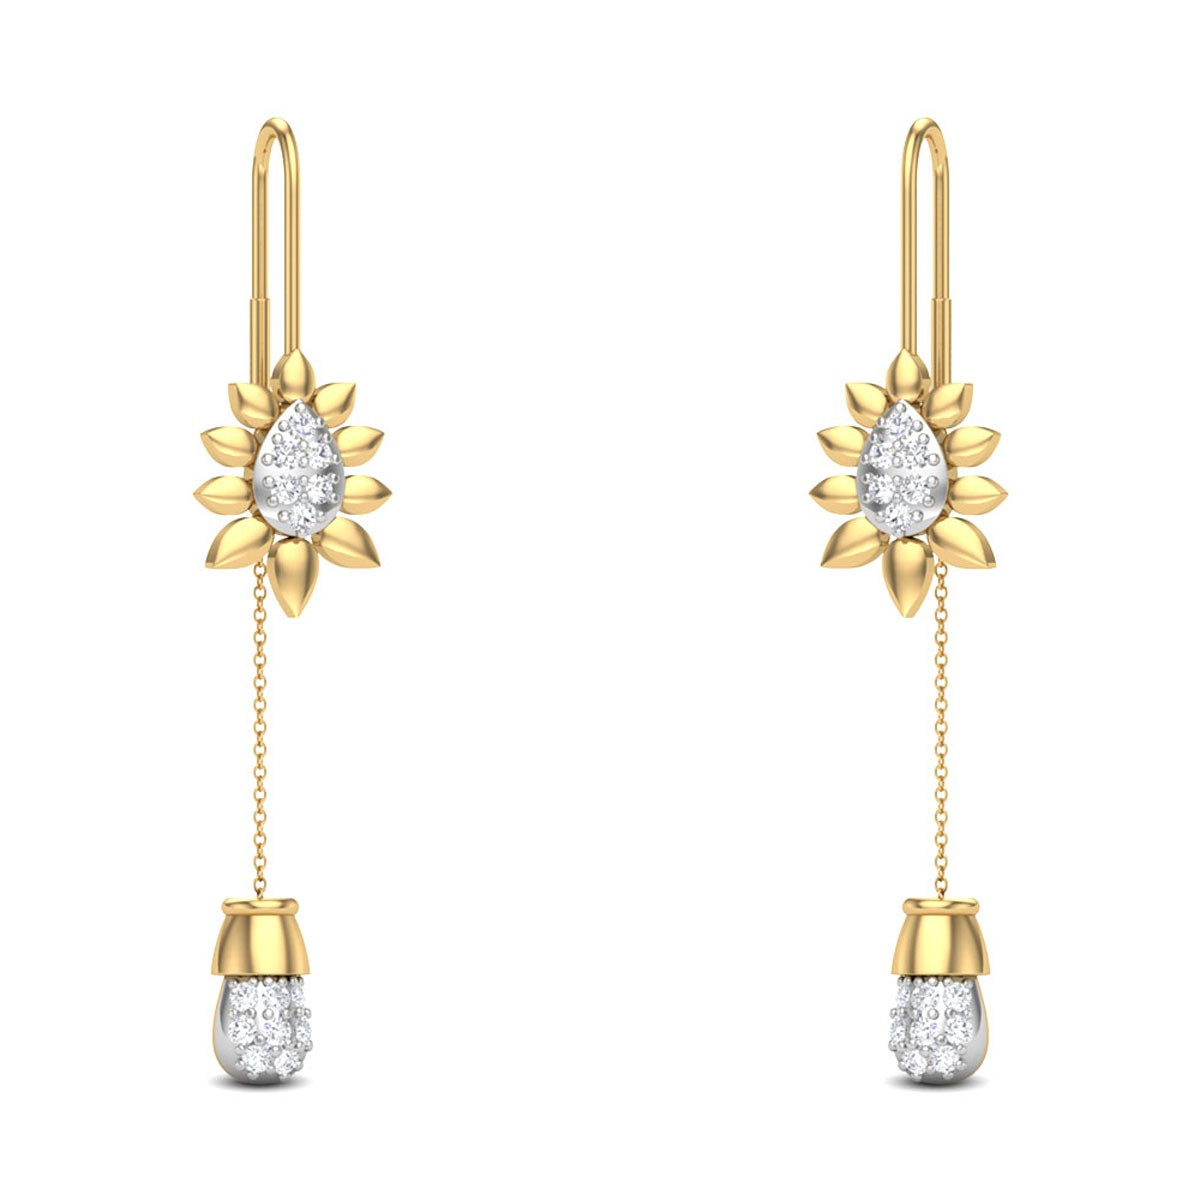 Jalanea Floral Sui Dhaga Diamond Earrings